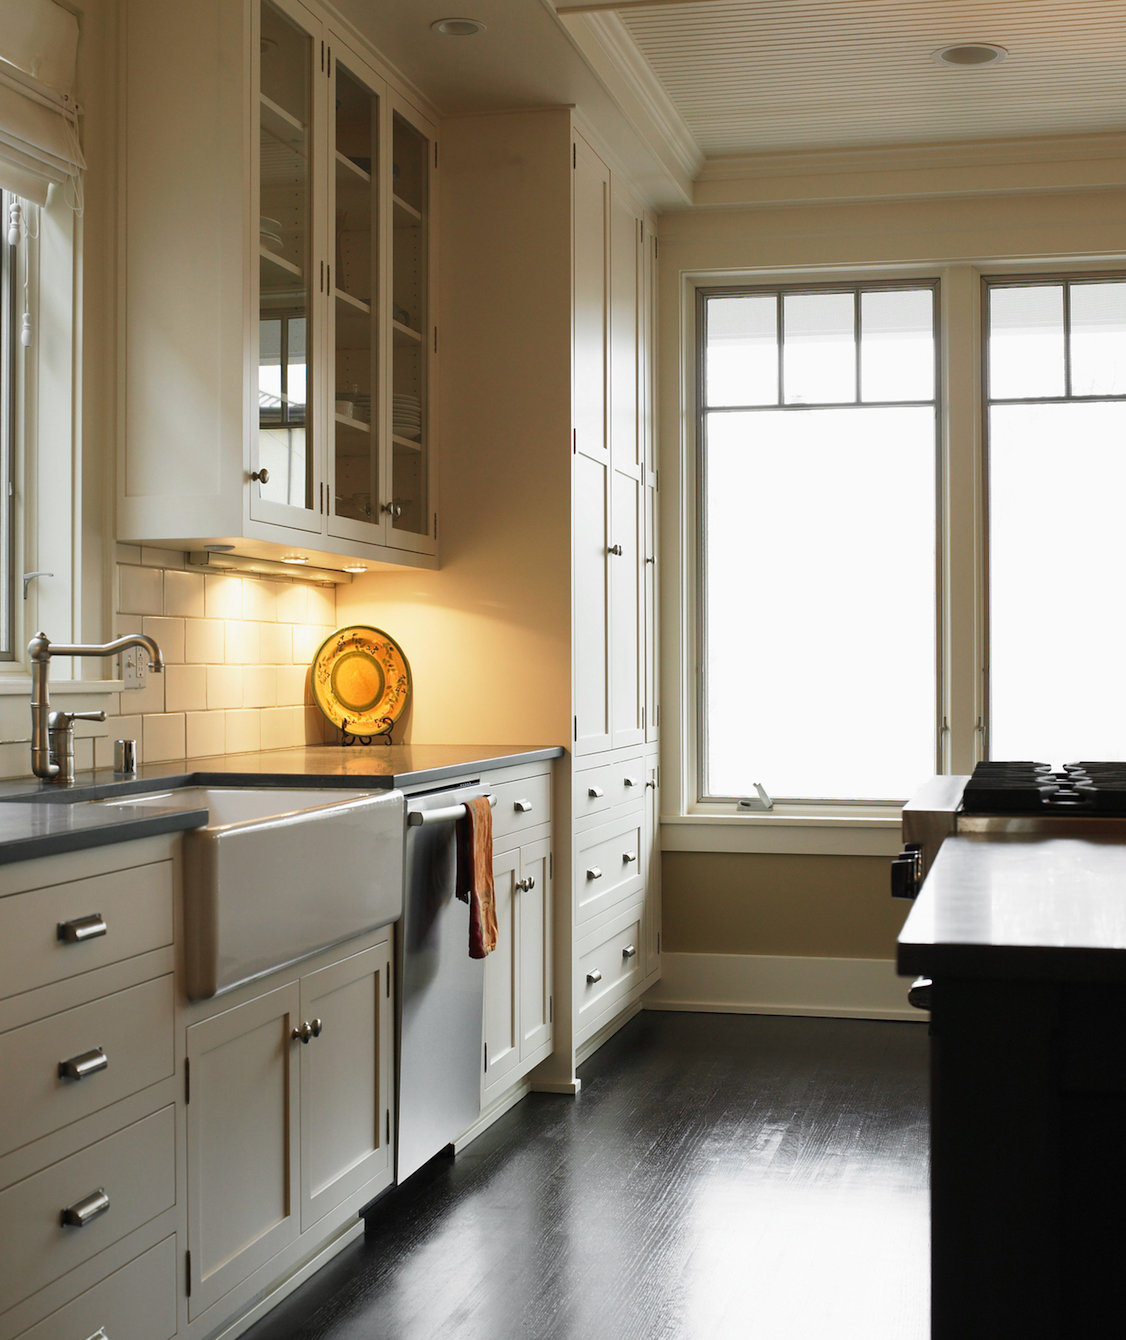 The $25 Lighting Hack That Transformed My Kitchen (And Didn't Require an Electrician)